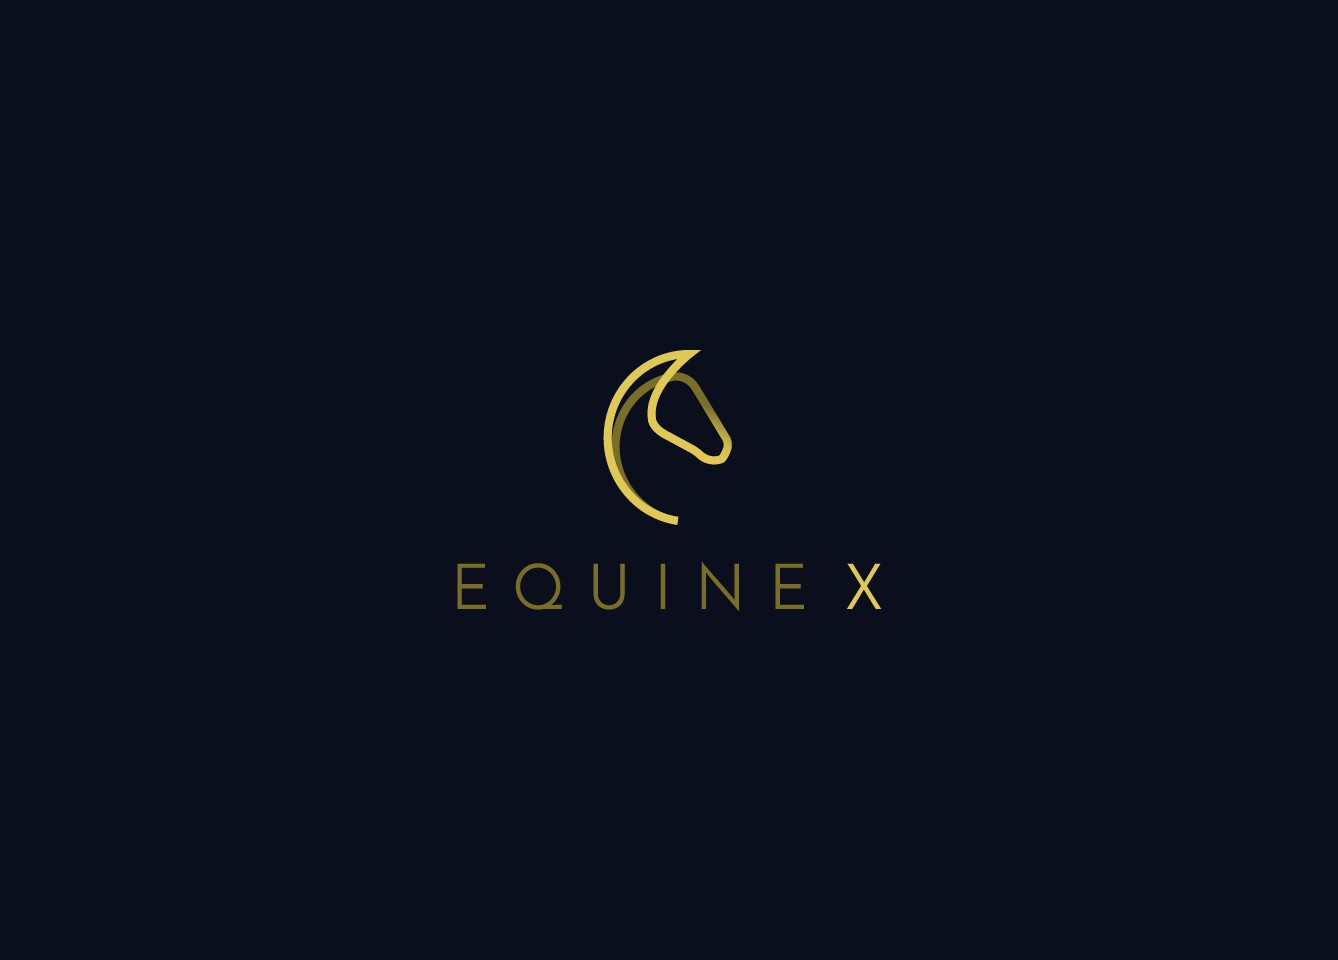 """innovative equine product needs a """"wow"""" factor logo"""